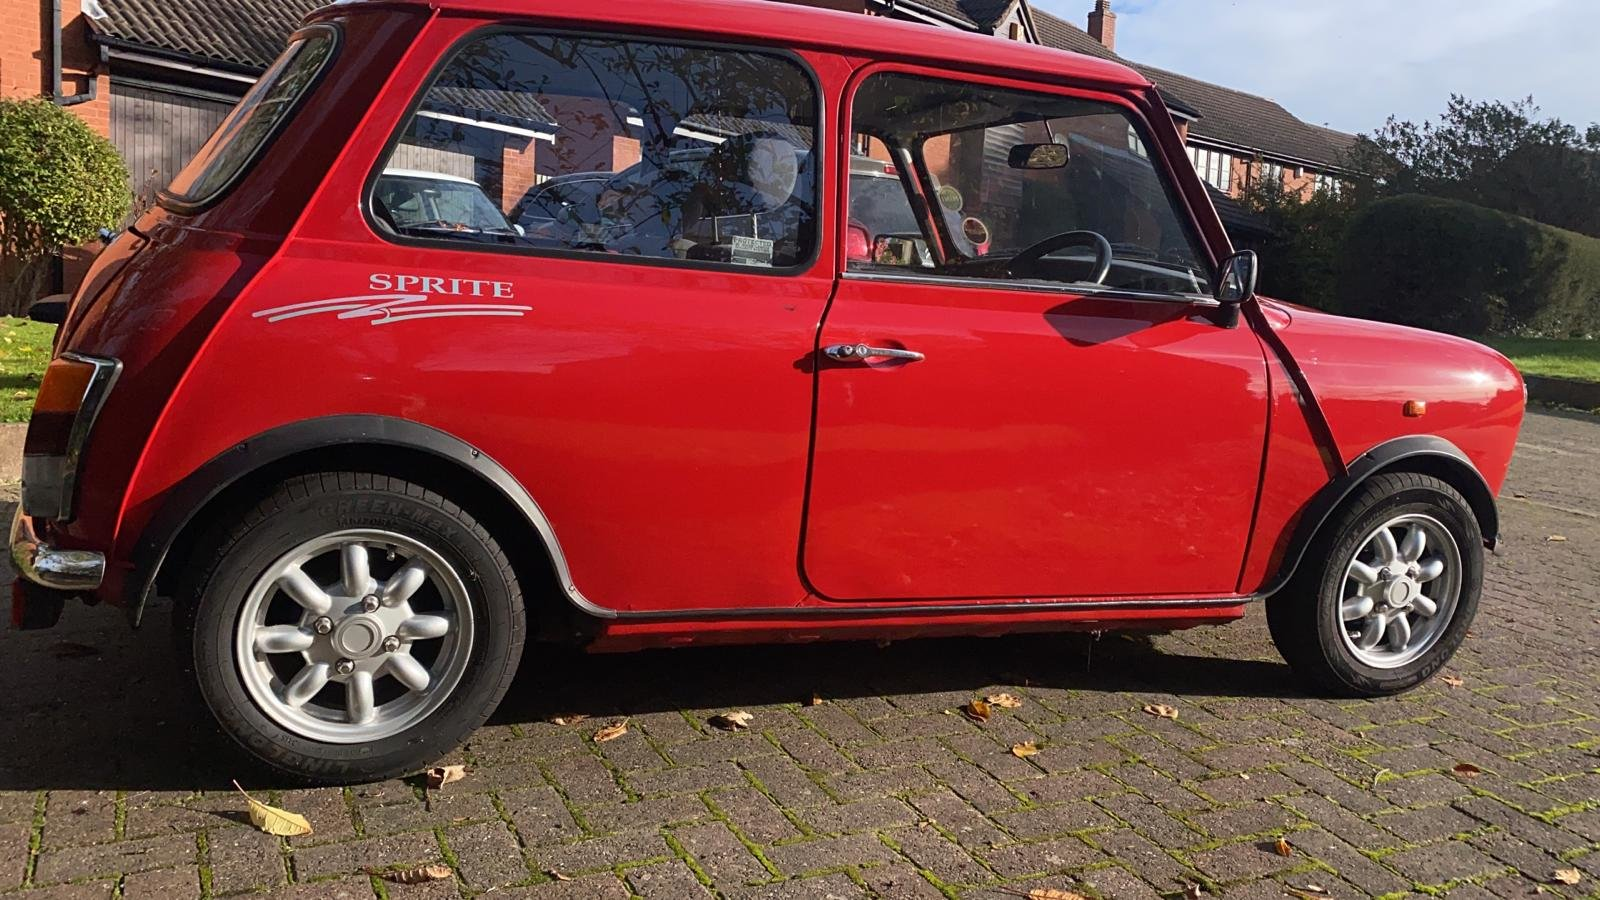 Stunning 1995 Mini Sprite only 35,000 miles SOLD (picture 4 of 6)